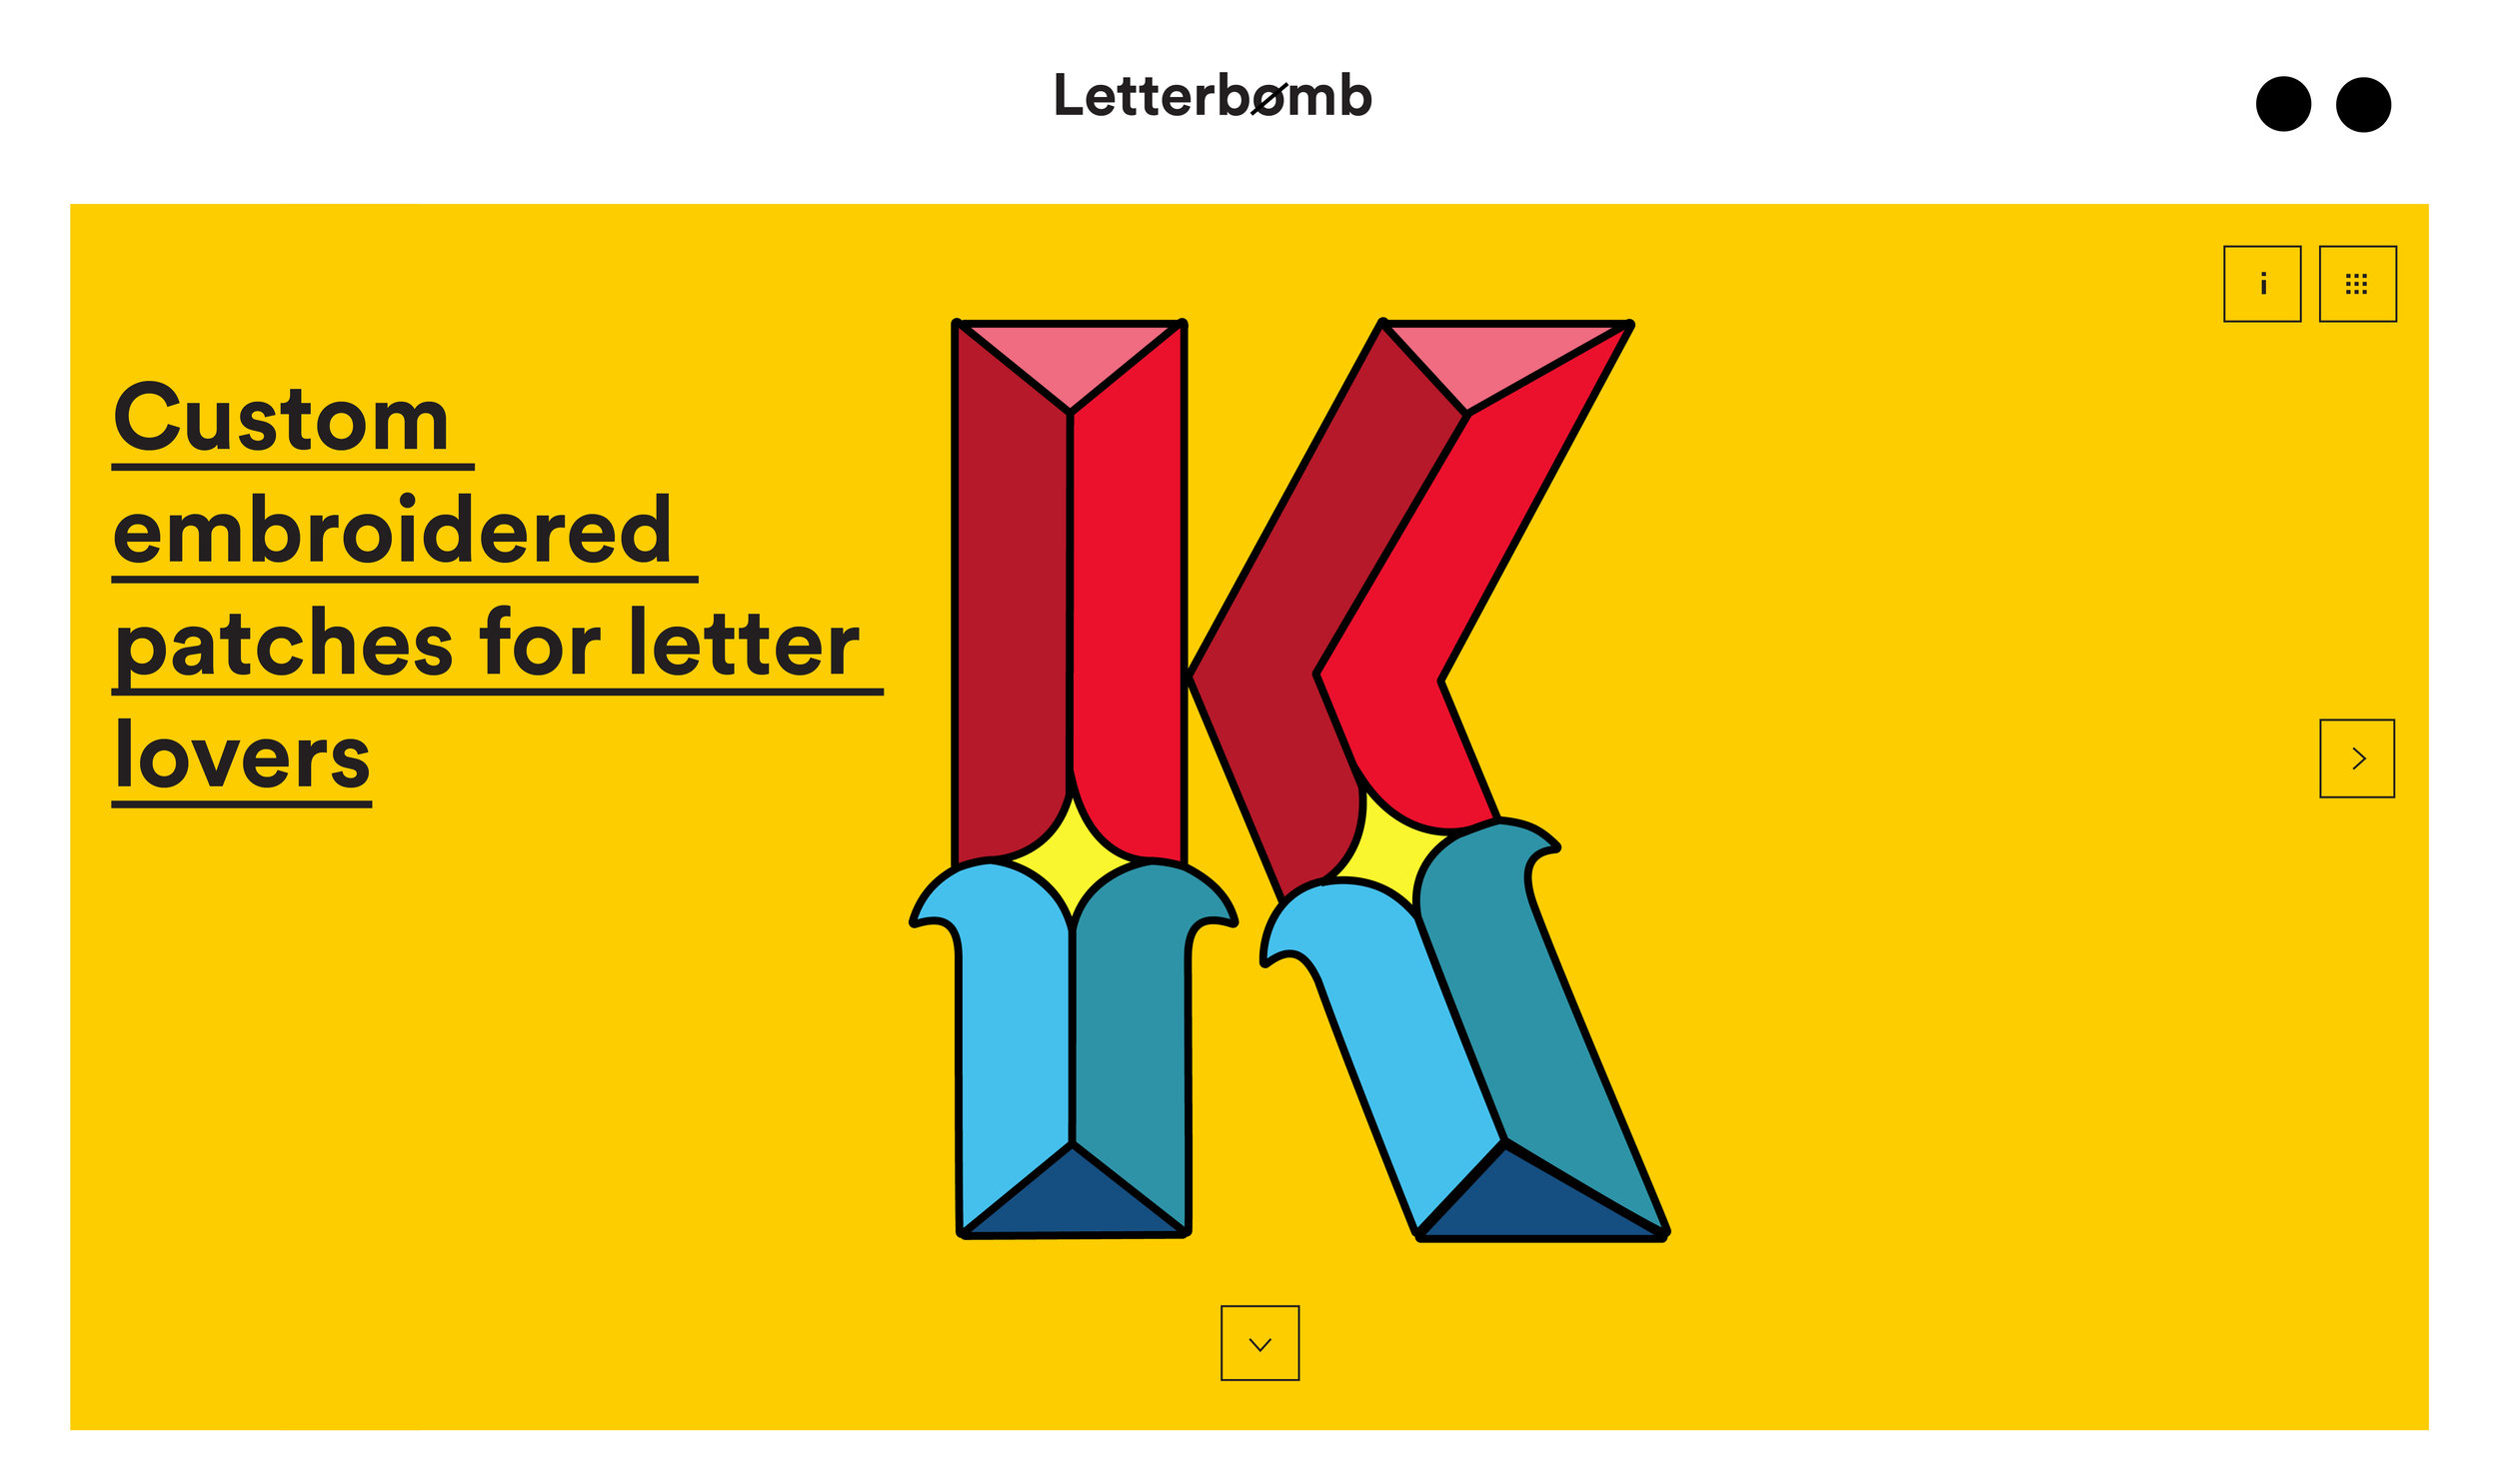 Letterbomb_webpages-01.jpg